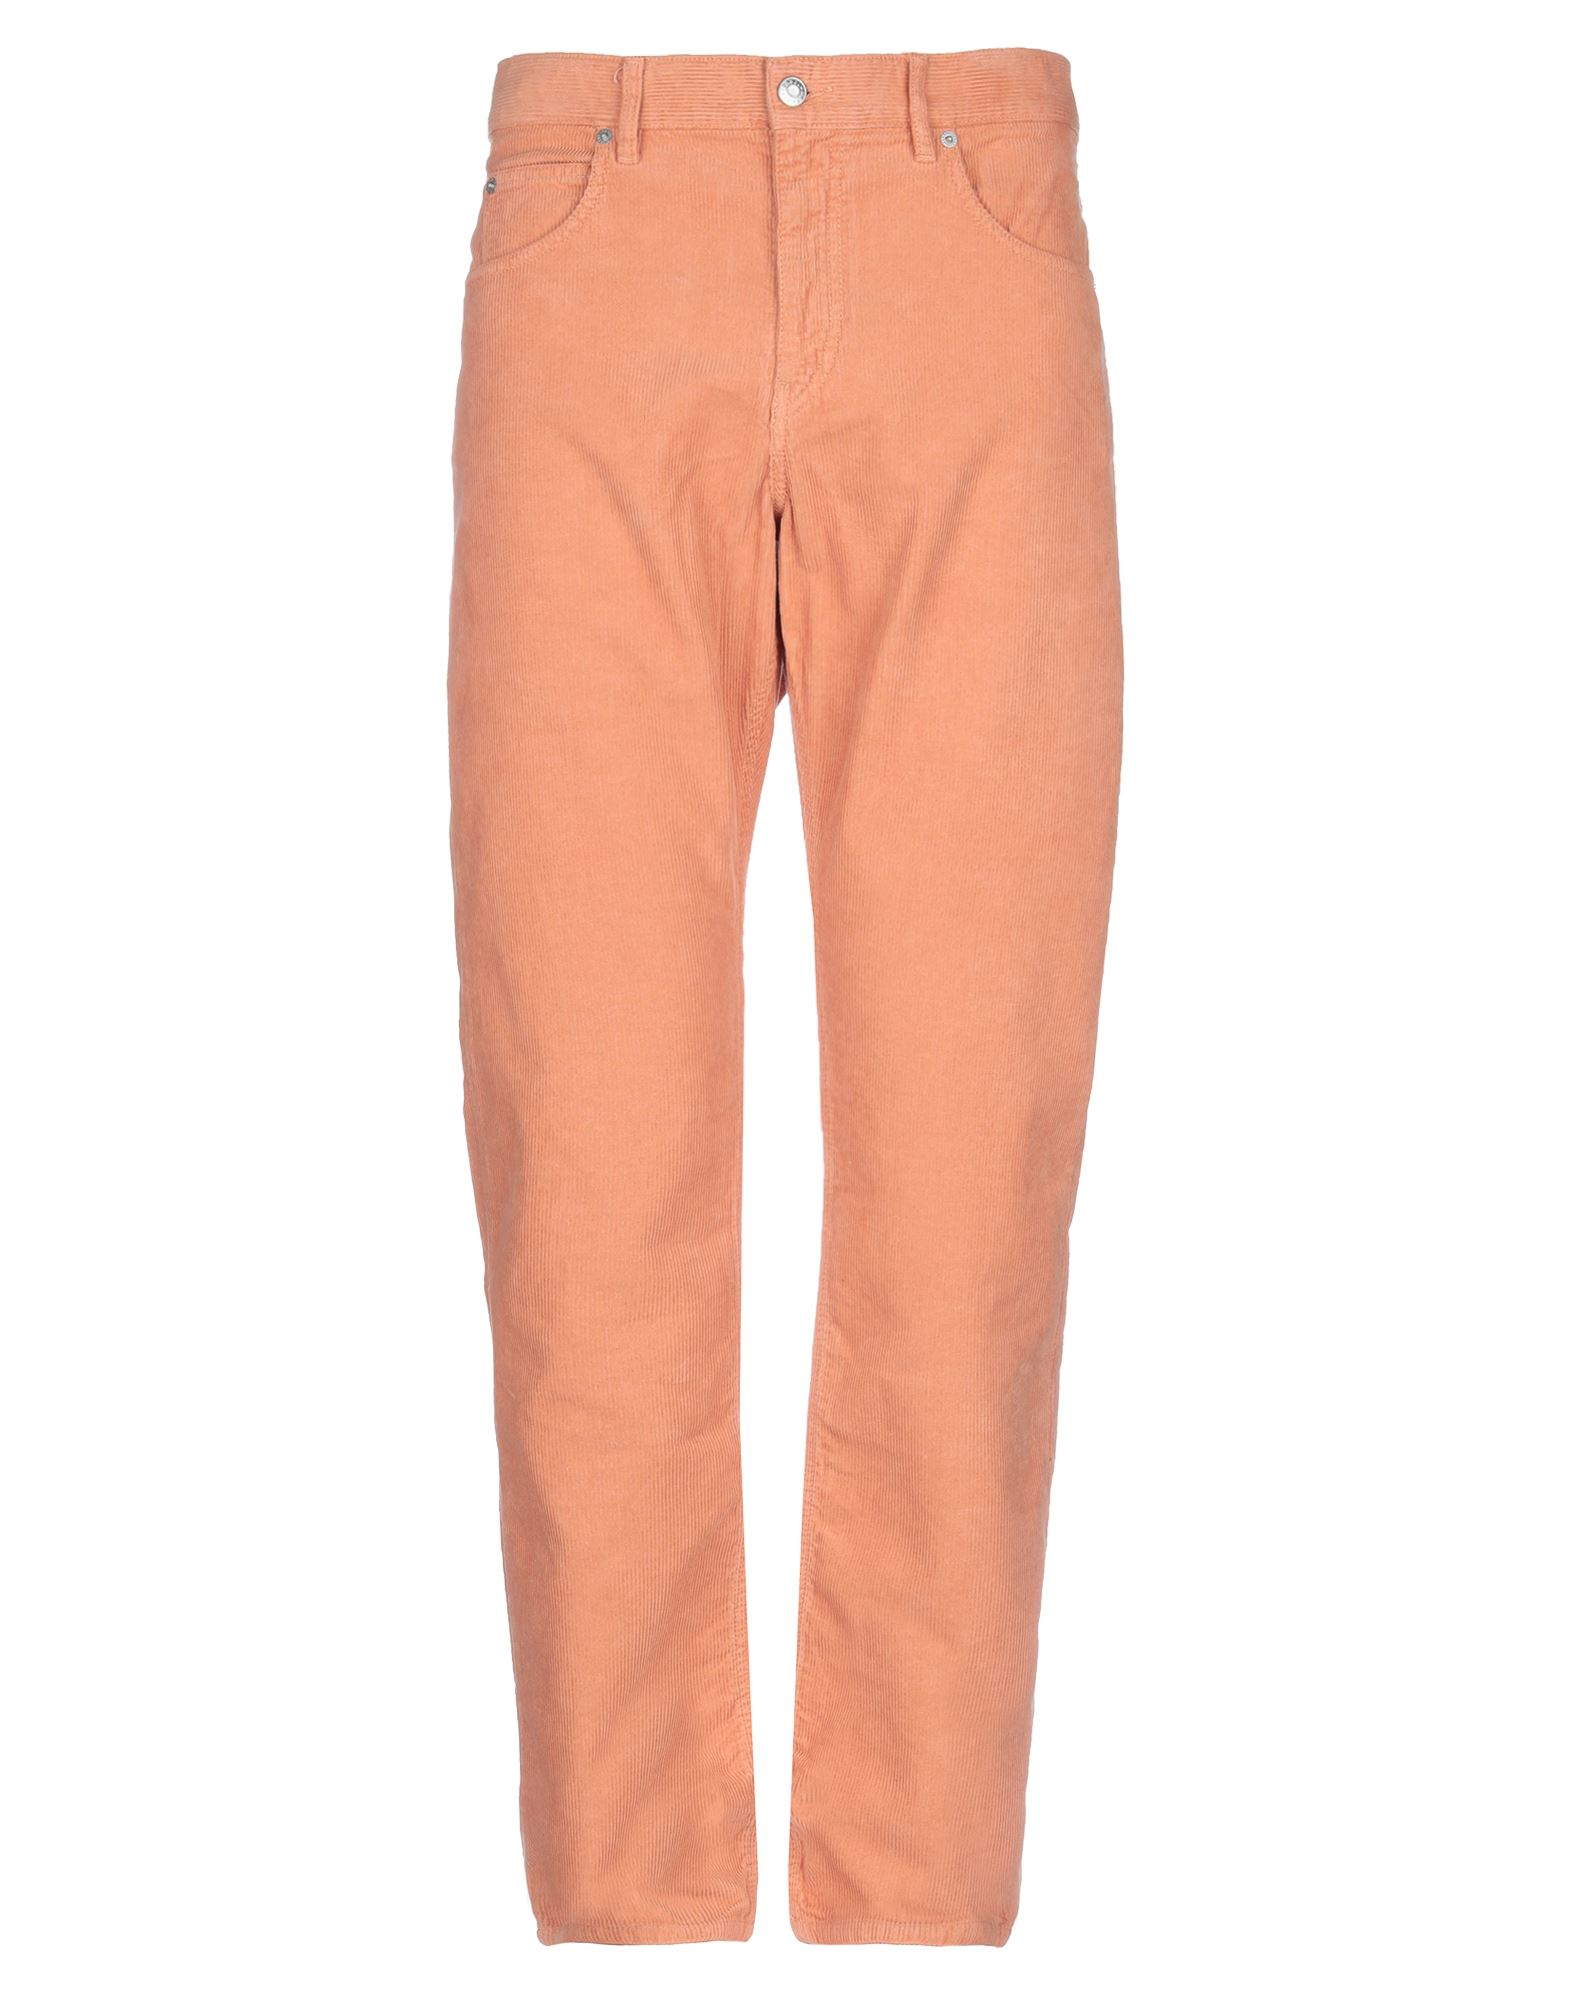 ISABEL MARANT Casual pants. velvet, ribbed, basic solid color, no appliqués, mid rise, regular fit, straight leg, button, zip, multipockets. 100% Cotton